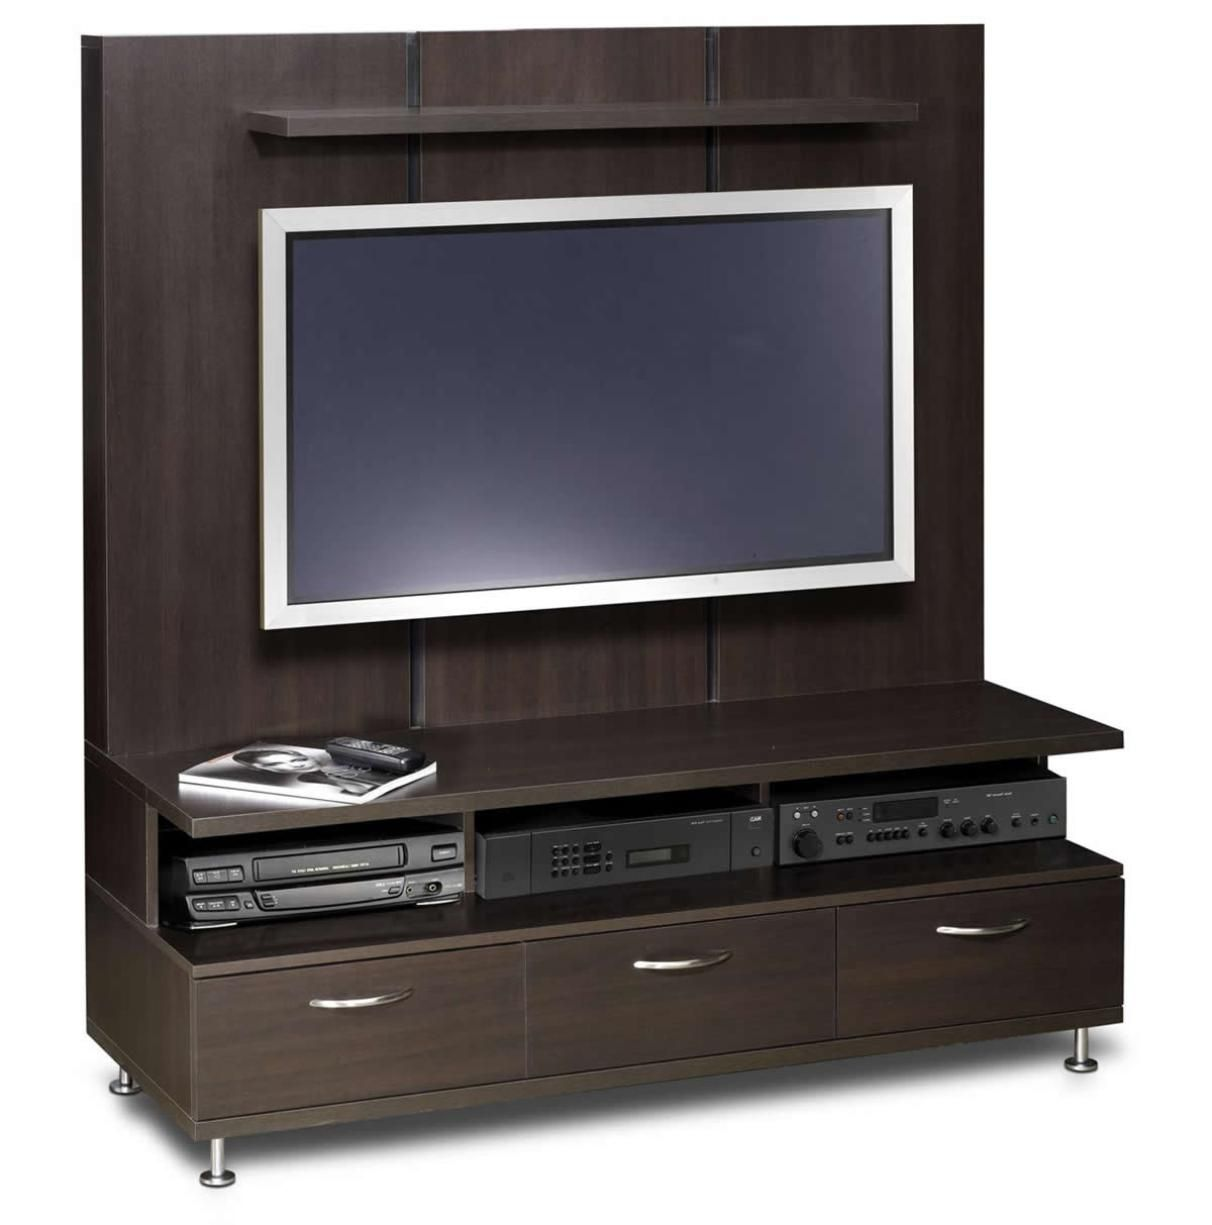 Tv Stand Designs Wooden : Woodworking plans plasma tv stand free download